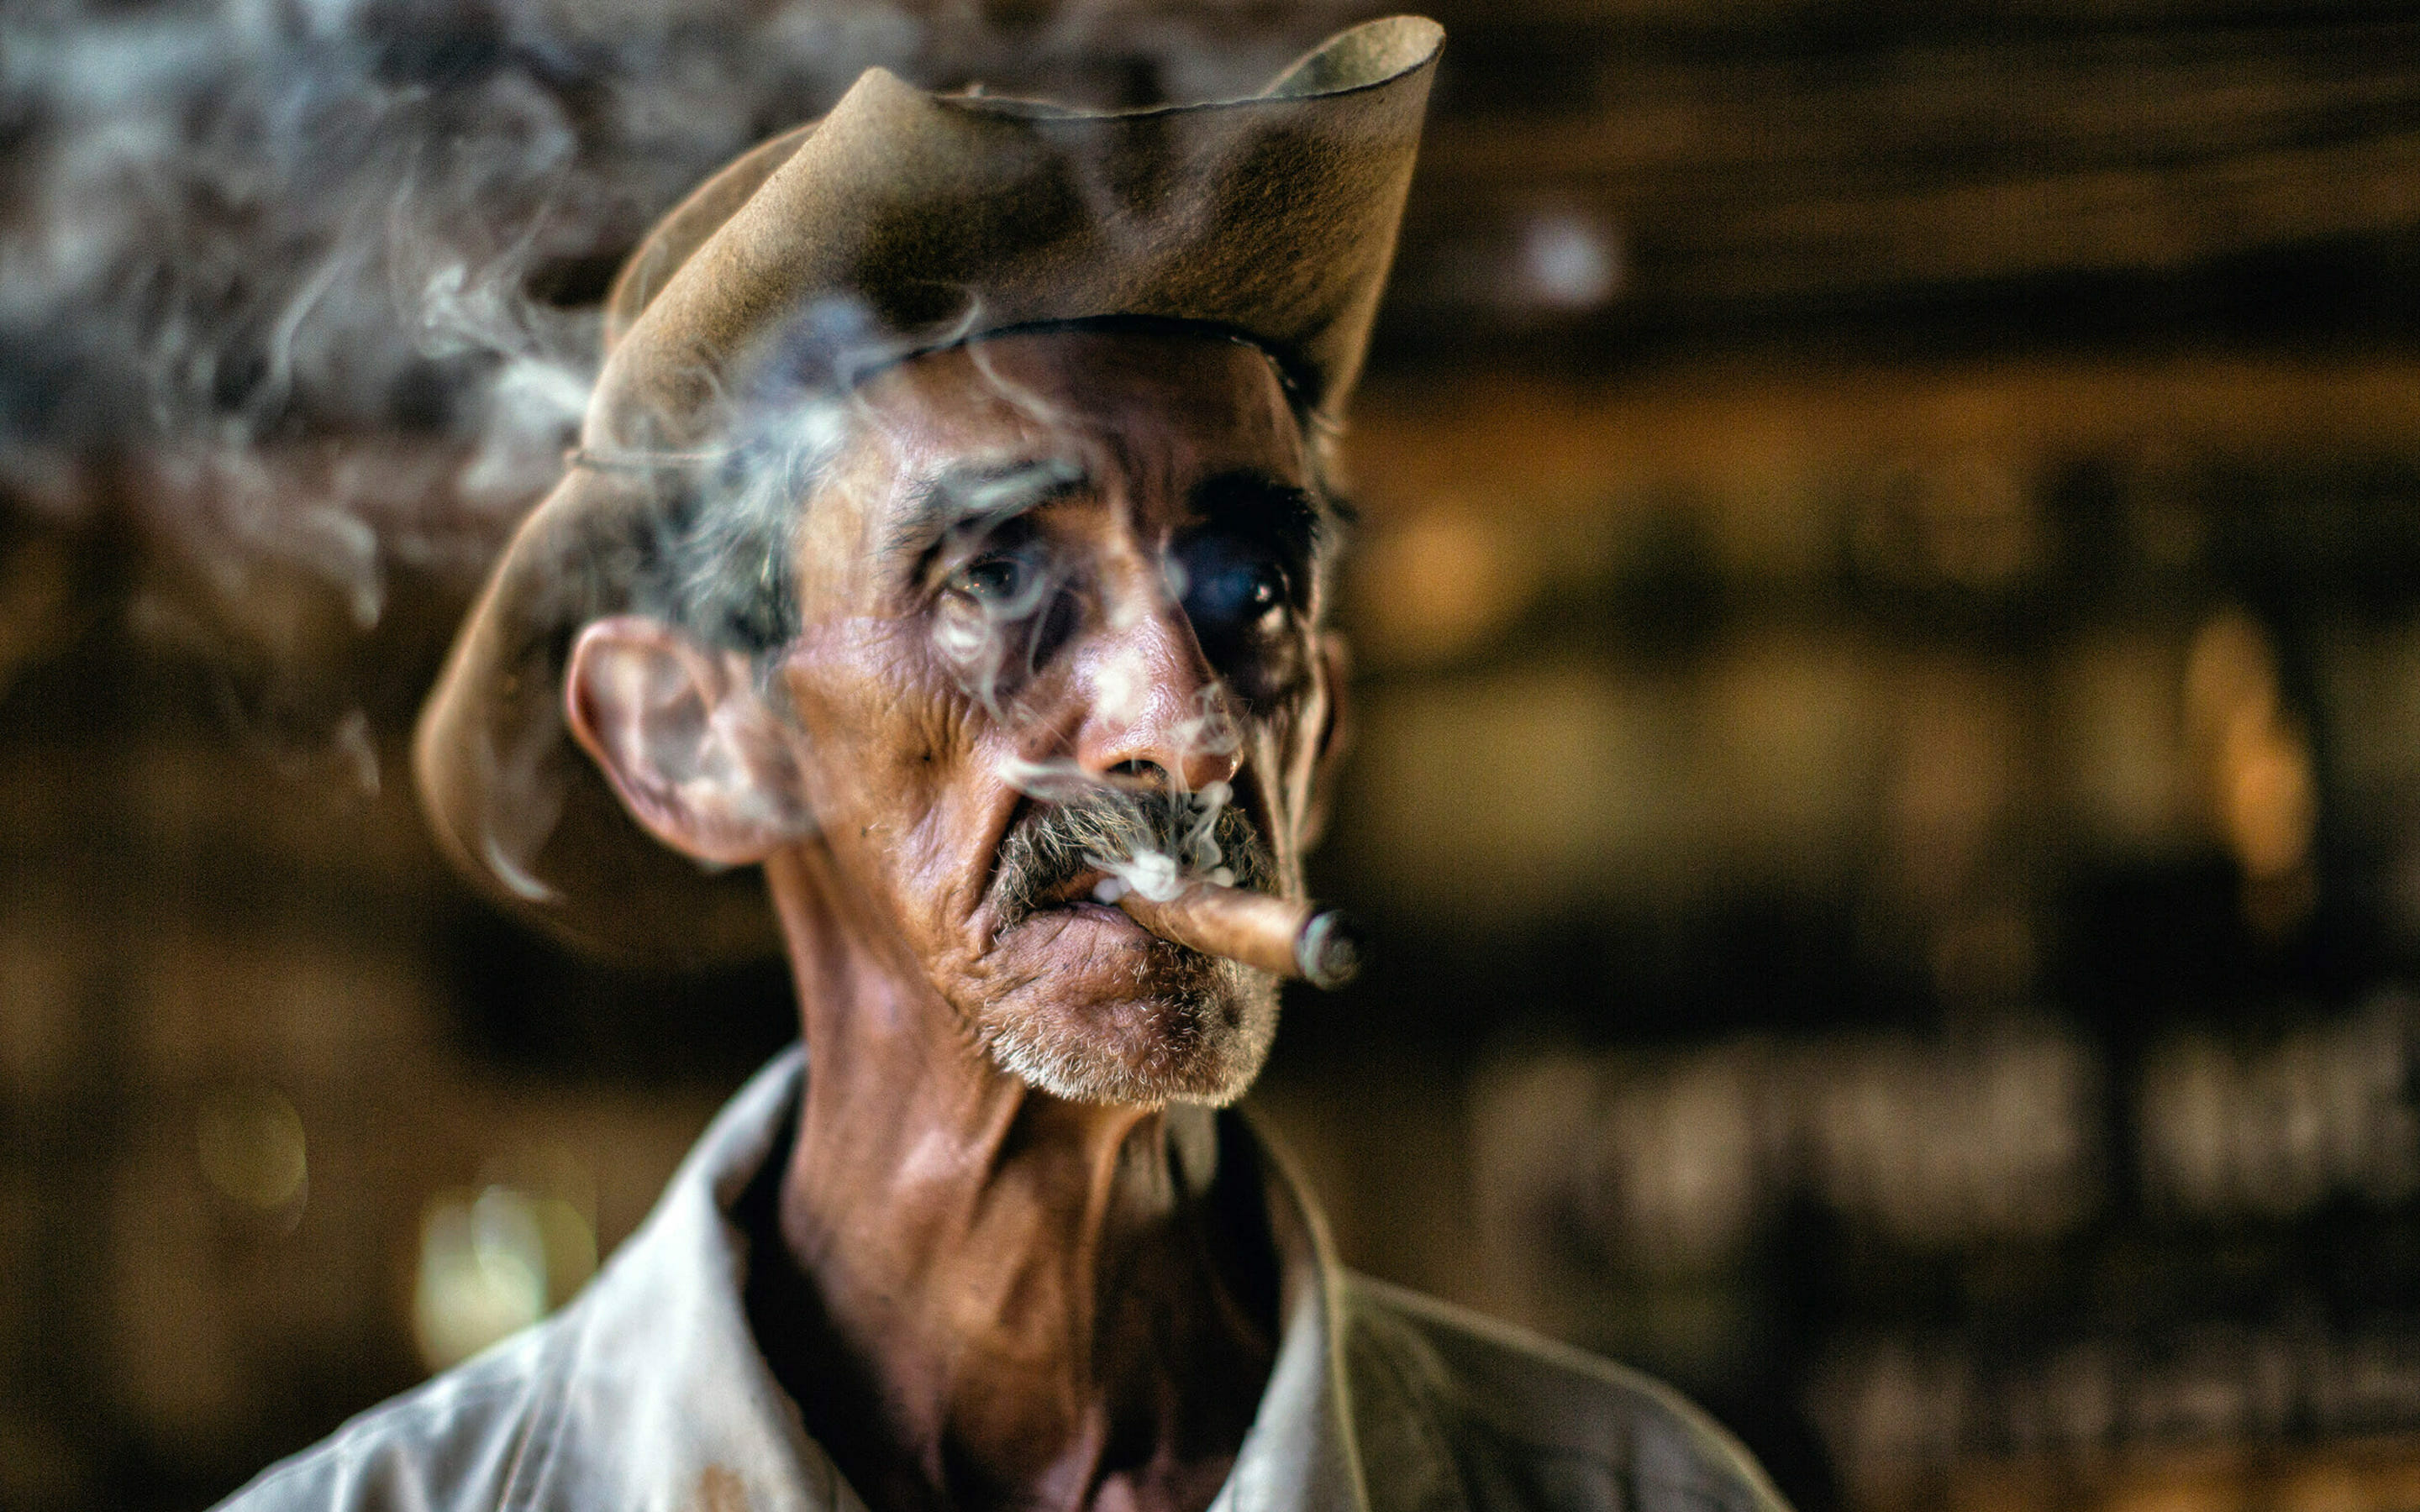 Cuba tobacco farmer Terry Scussel photo tour